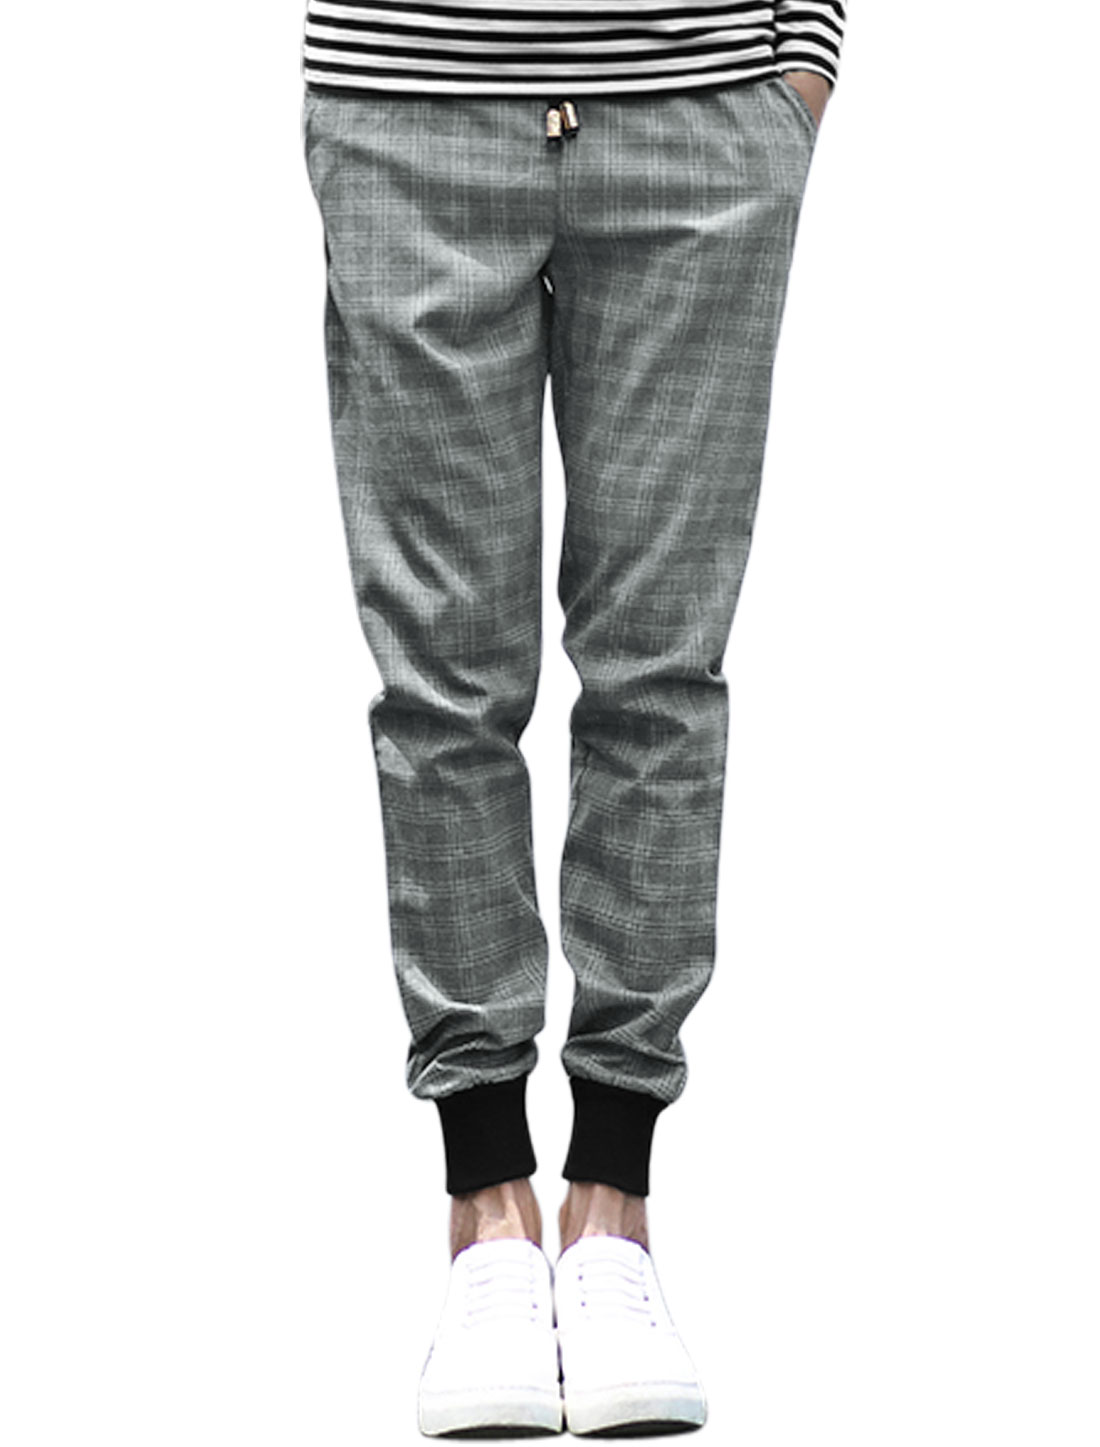 Men Natural Waist Plaids Prints Casual Tapered Pants Gray W30